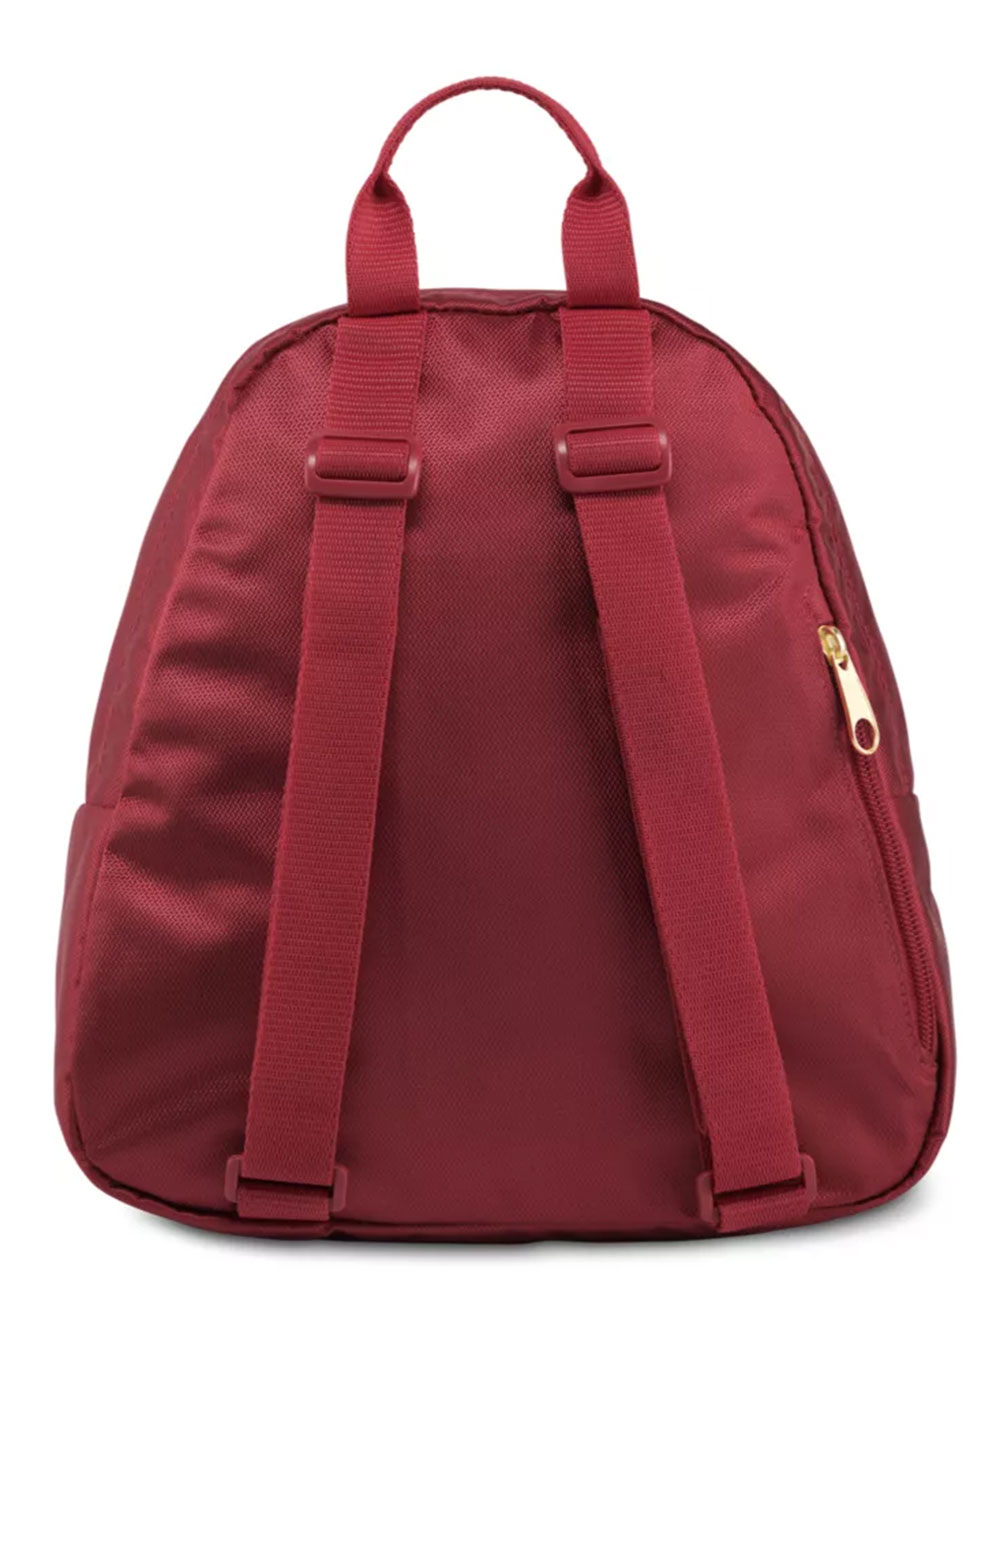 Half Pint Luxe Backpack - Bright Cherry  3